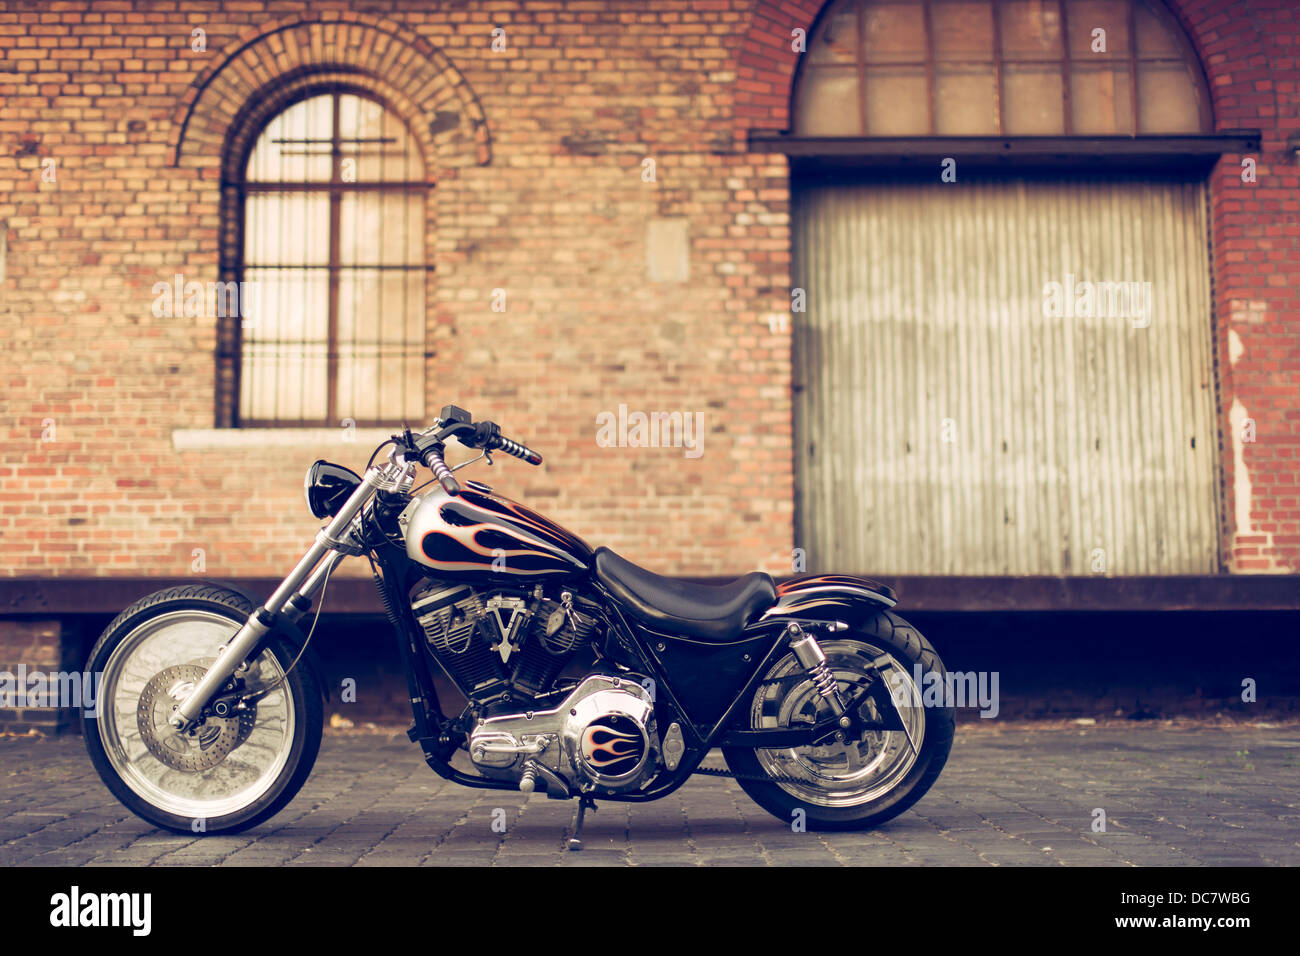 Harley Davidson in front of an old storage building - Stock Image